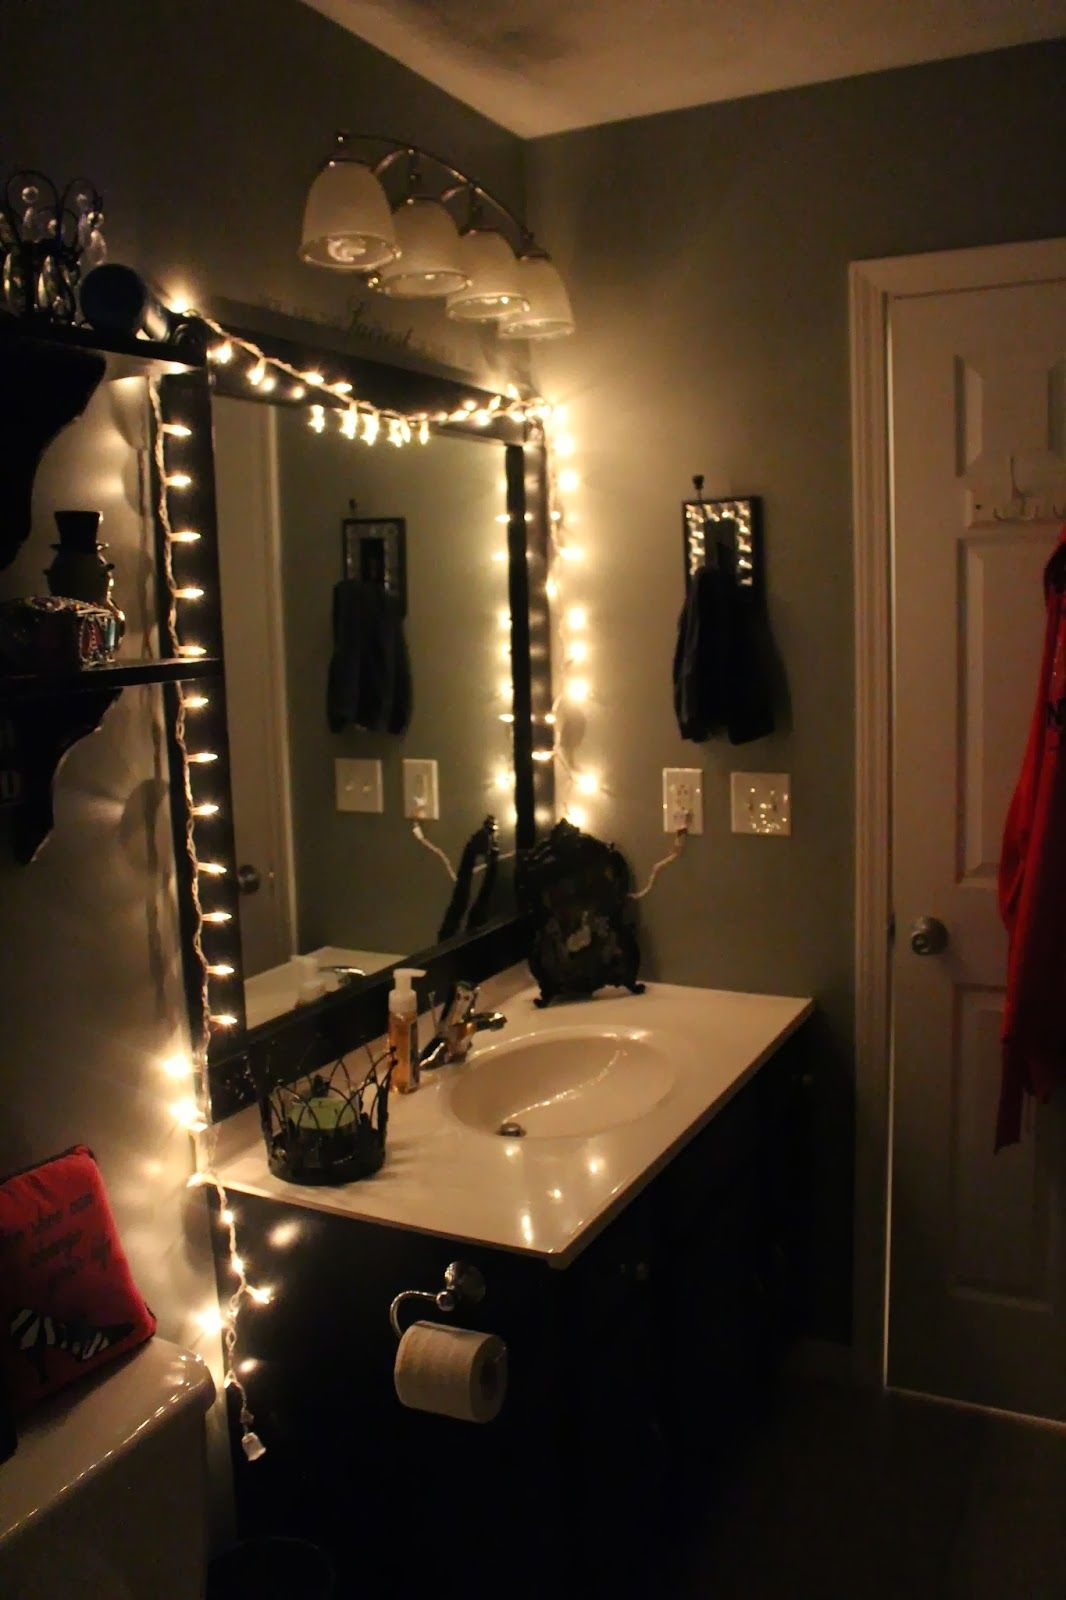 Bathroom Rennovation Black And White Christmas Lights